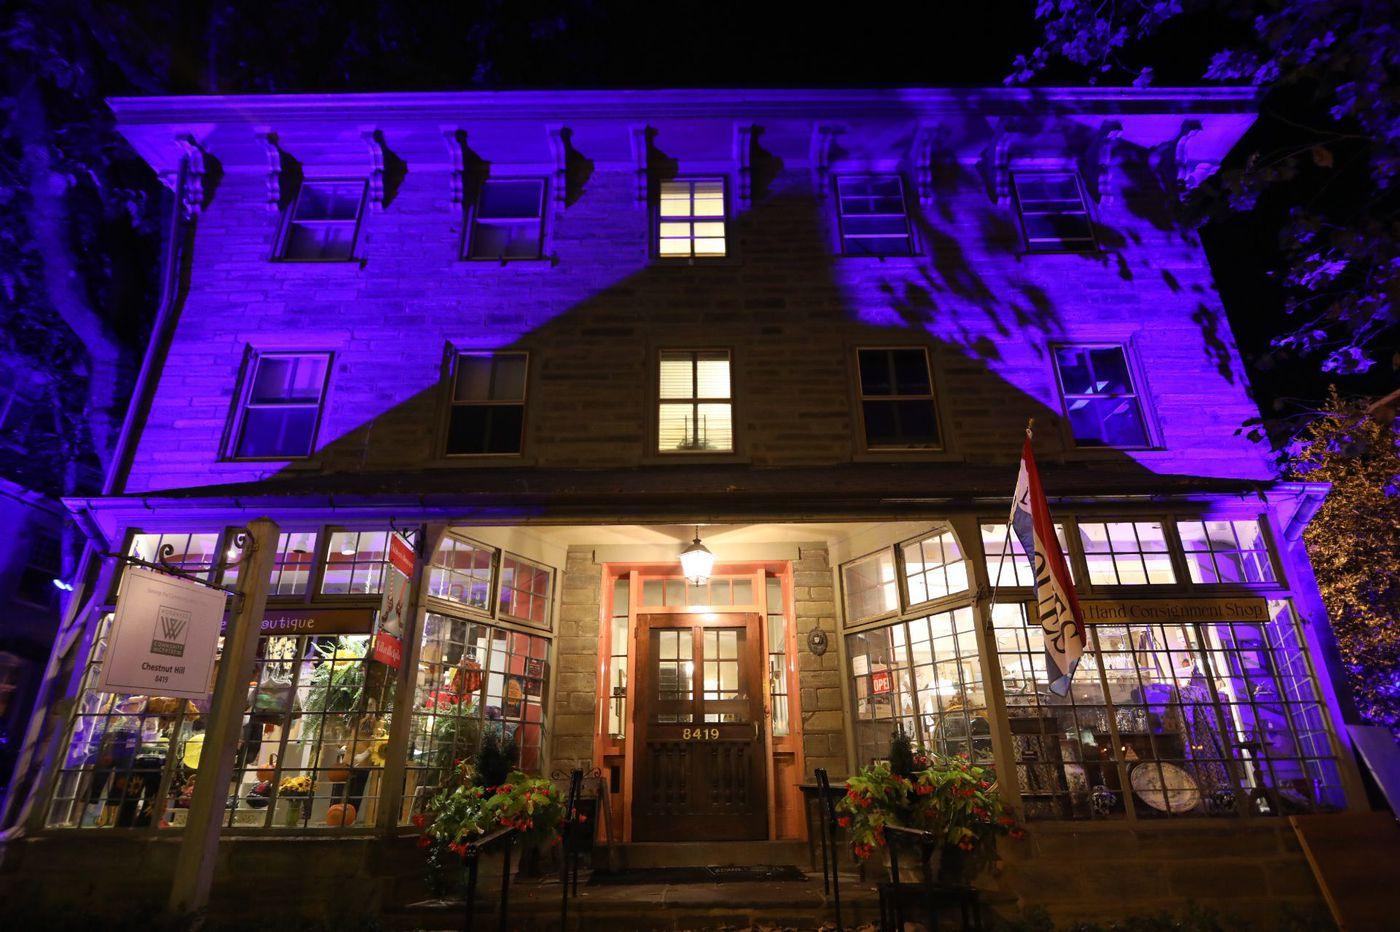 Great family outings in Philly this week, including pop-up art in parks and Chestnut Hill's 'Night of Lights'